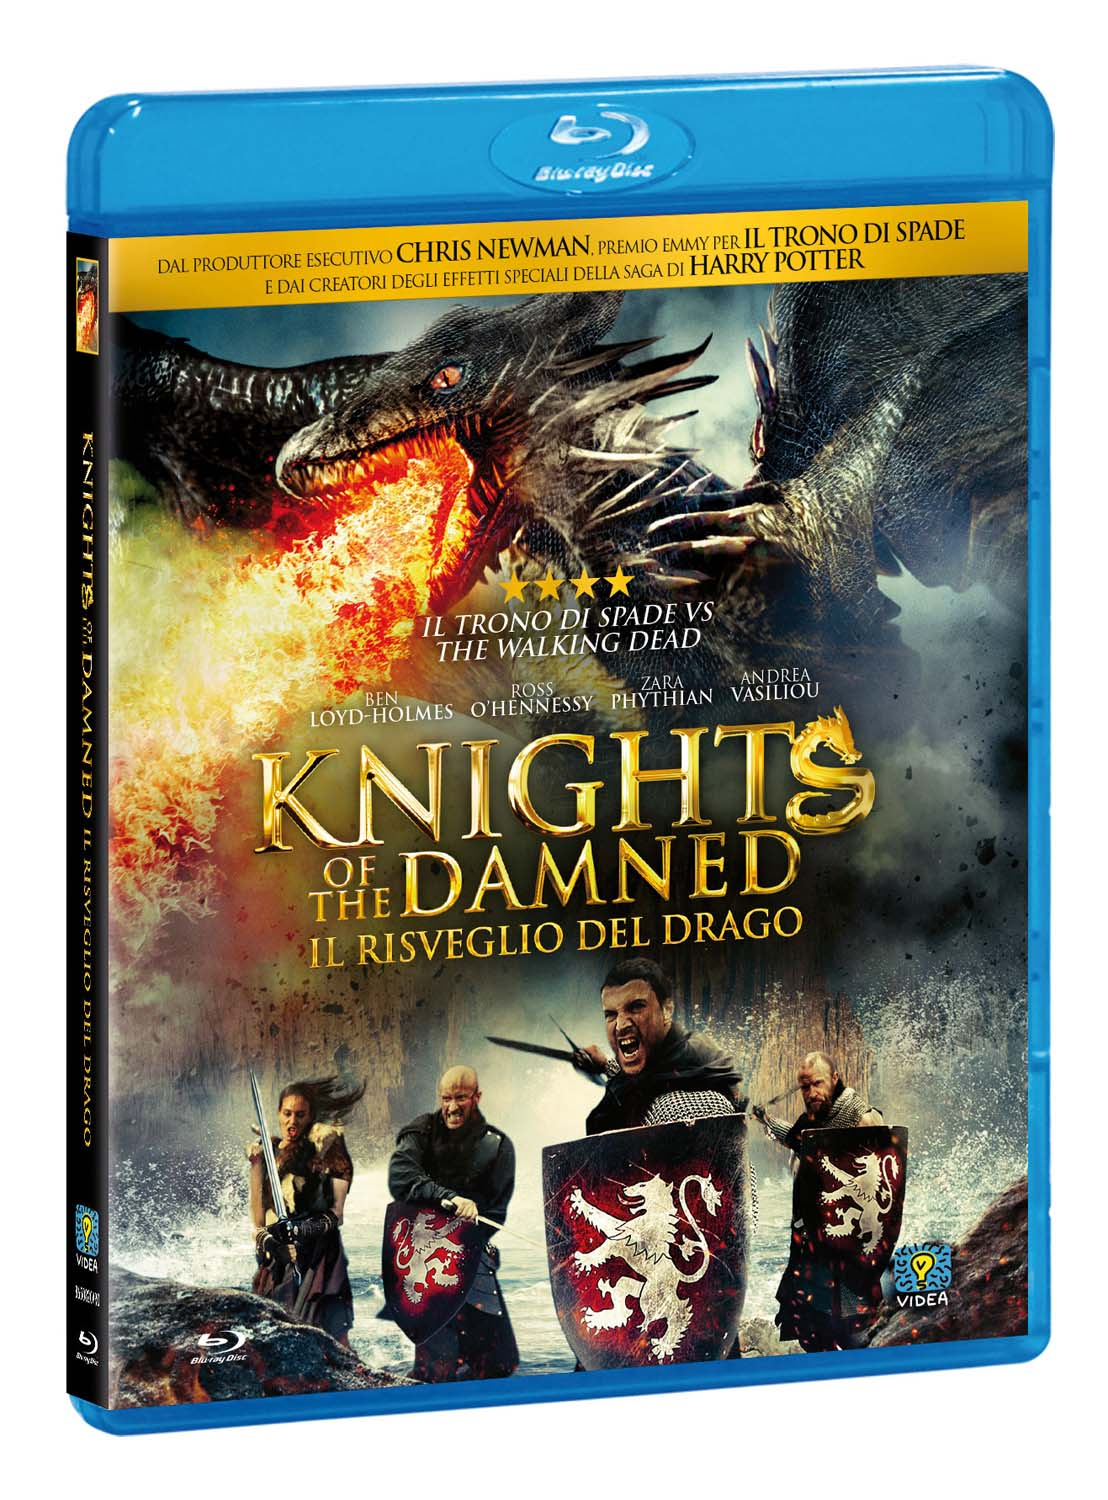 KNIGHTS OF THE DAMNED - IL RISVEGLIO DEL DRAGO - BLU RAY